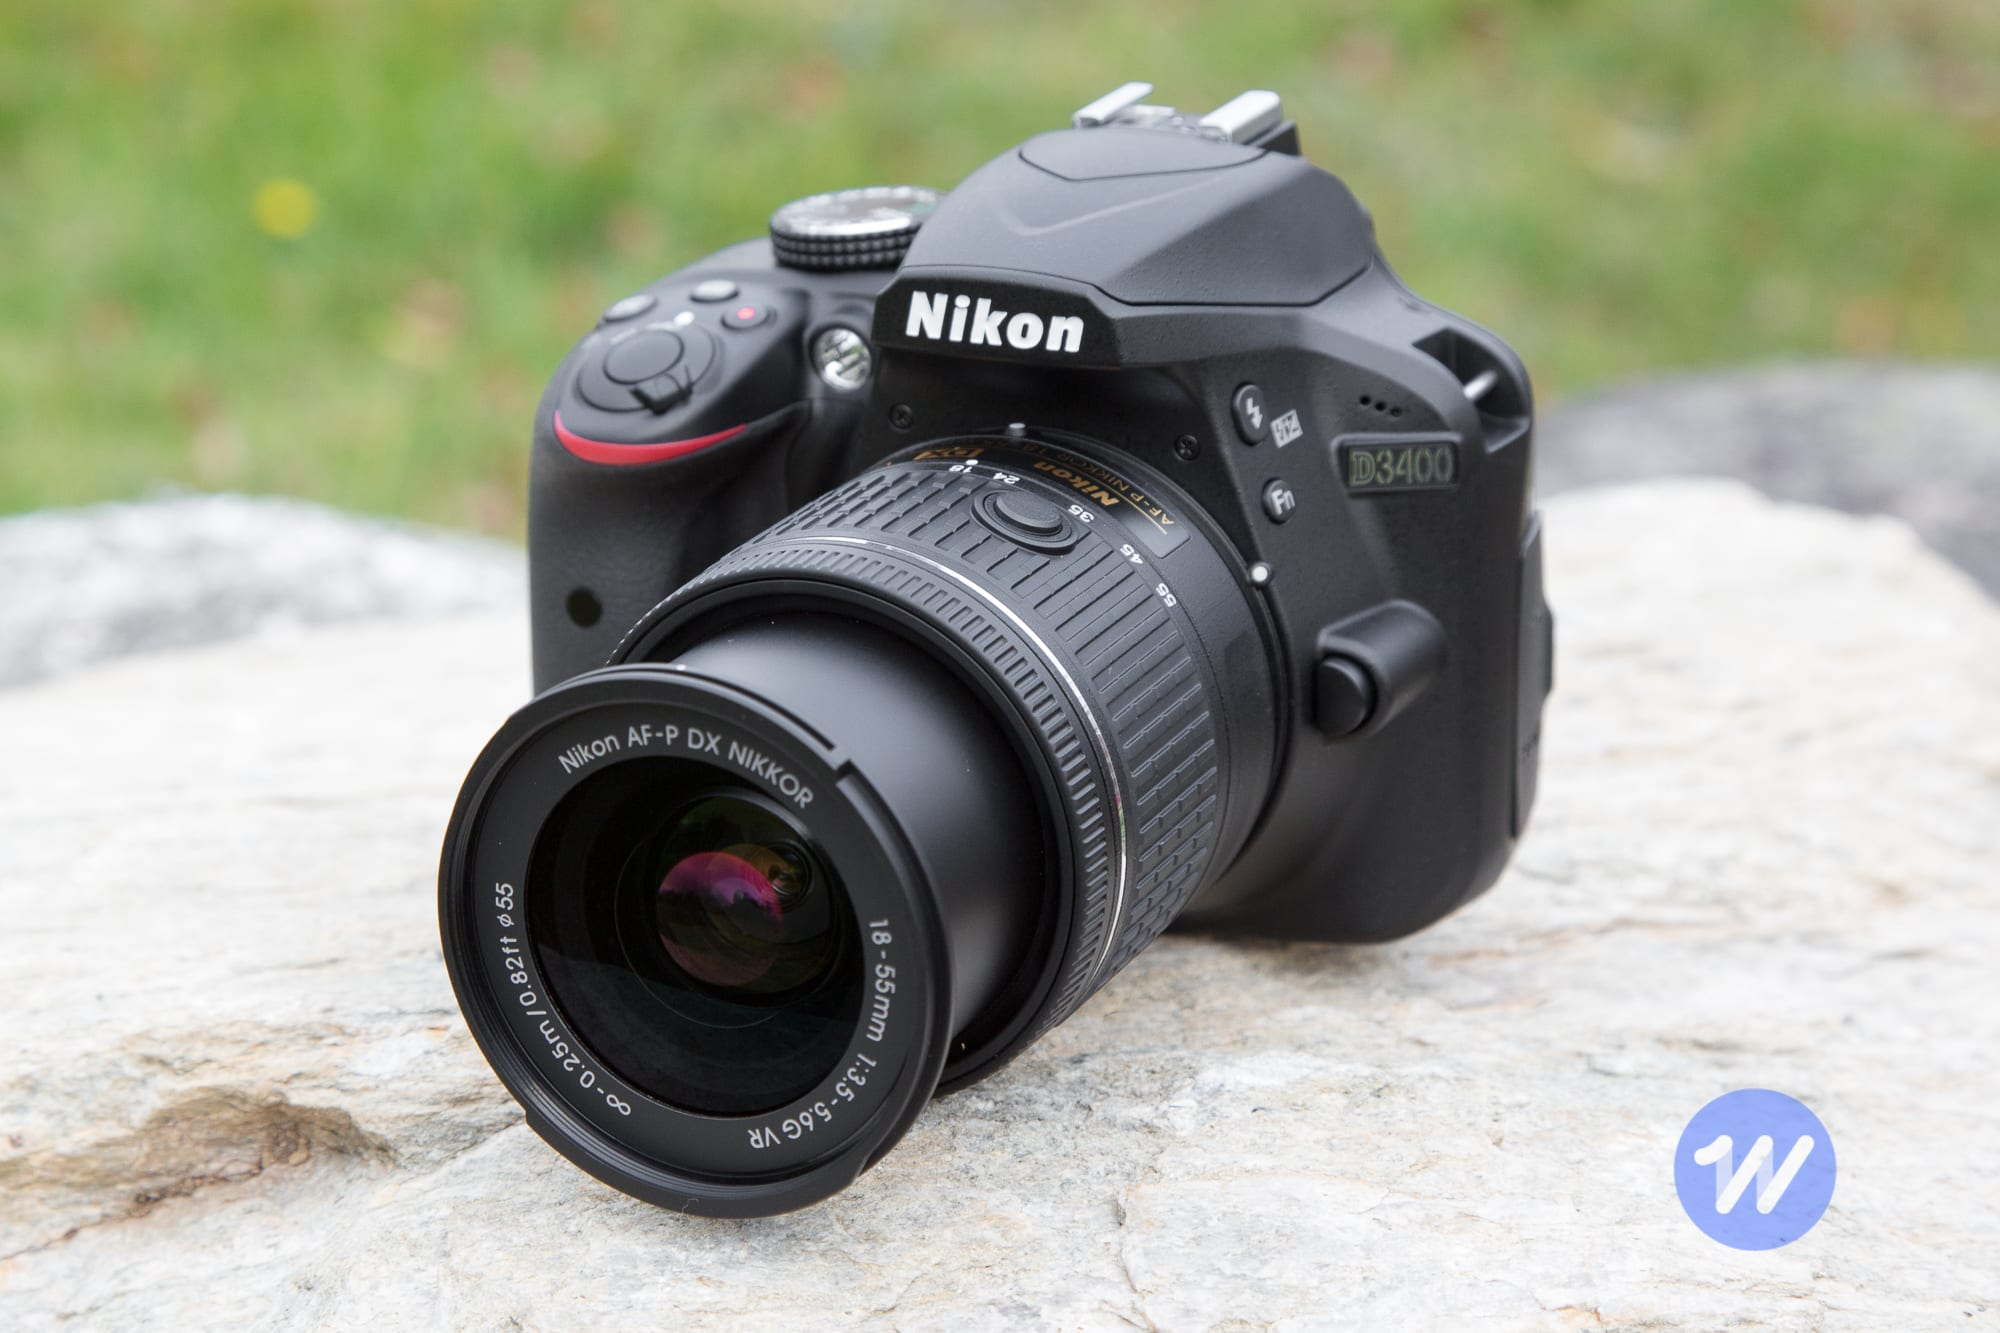 Best Dslr For Beginners 2020 The best DSLR for beginners